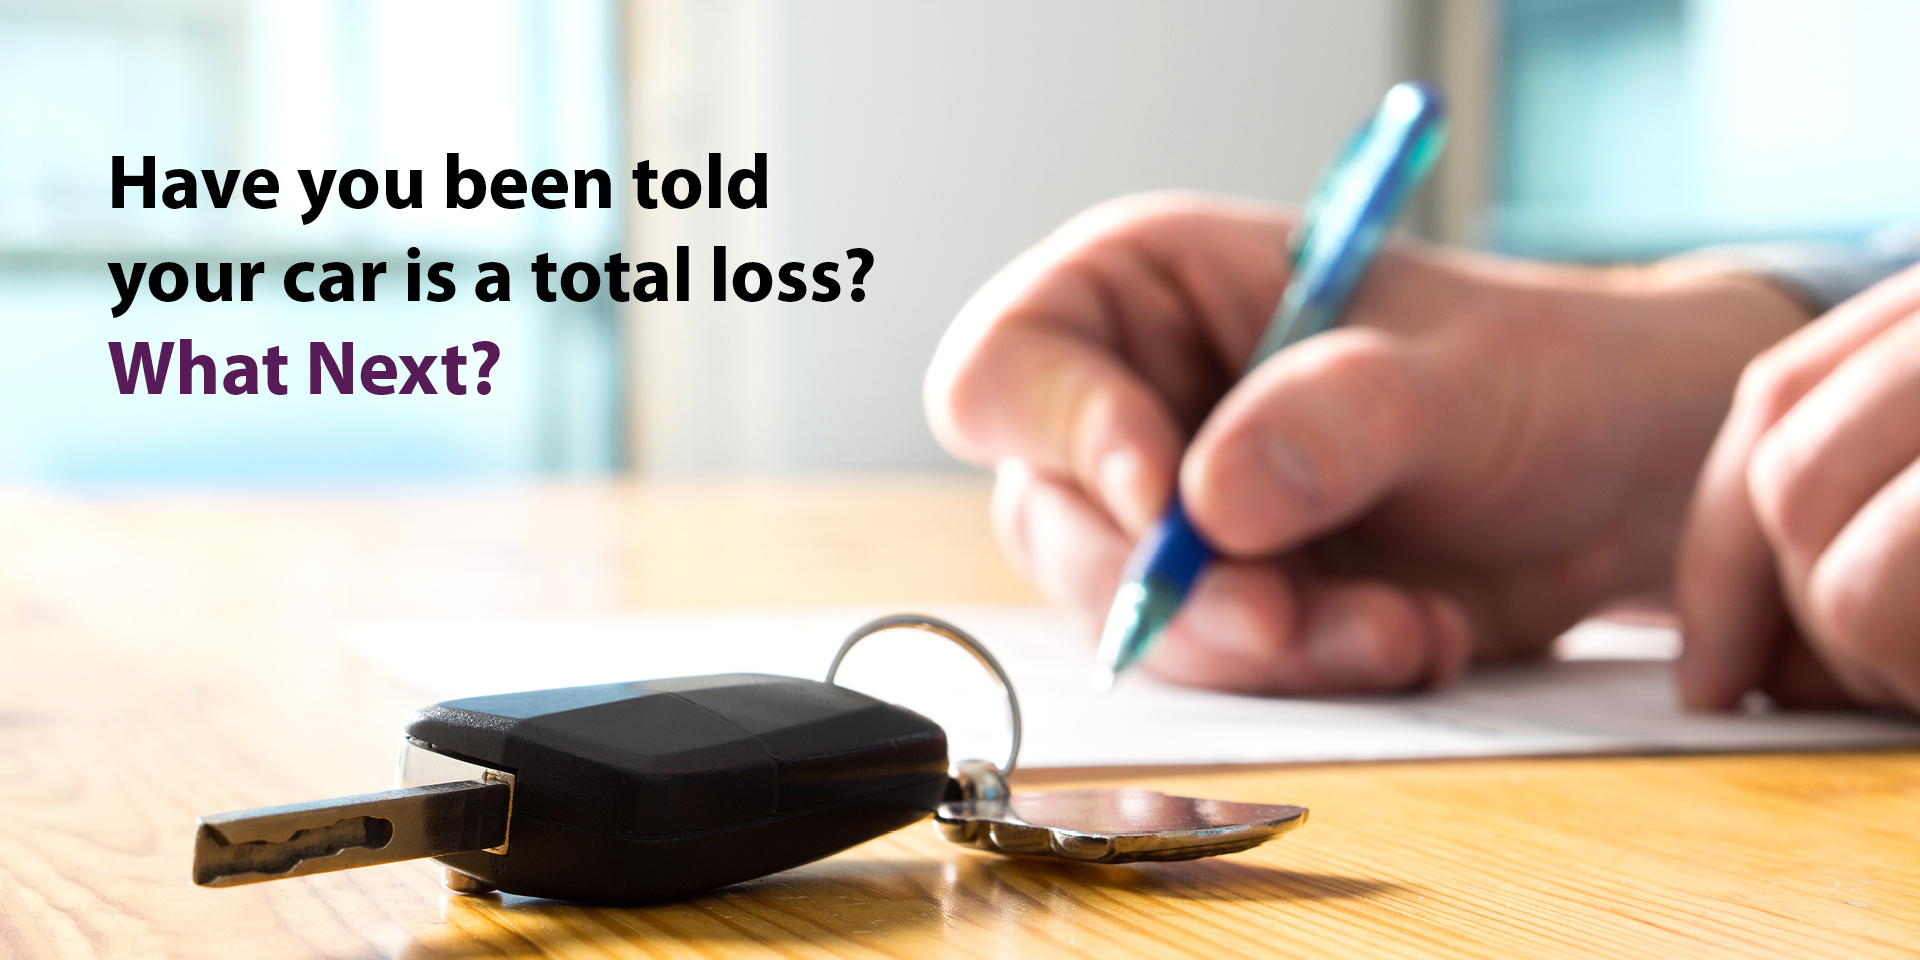 What should you do if your car is declared a total loss?